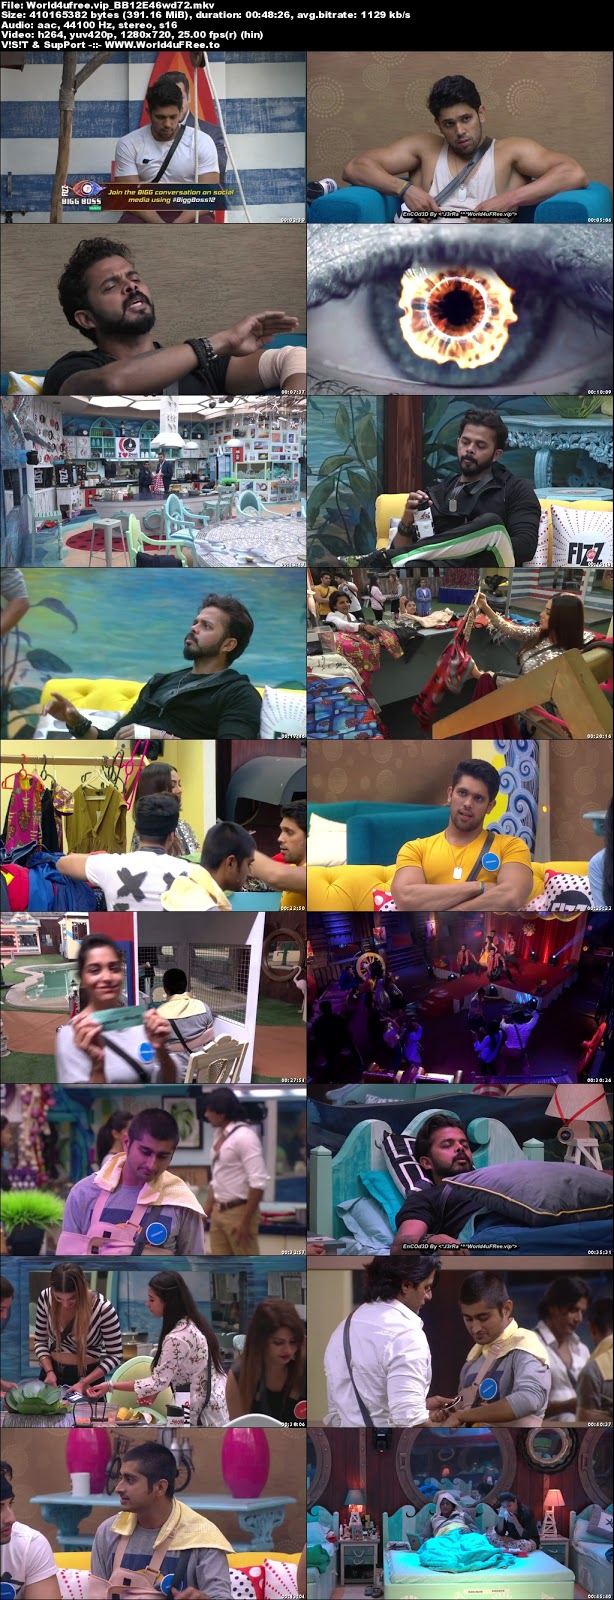 Bigg Boss 12 Episode 46 01 November 2018 720p WEBRip 350Mb x264 world4ufree.fun tv show Episode 46 01 november 2018 world4ufree.fun 300mb 250mb 300mb compressed small size free download or watch online at world4ufree.fun